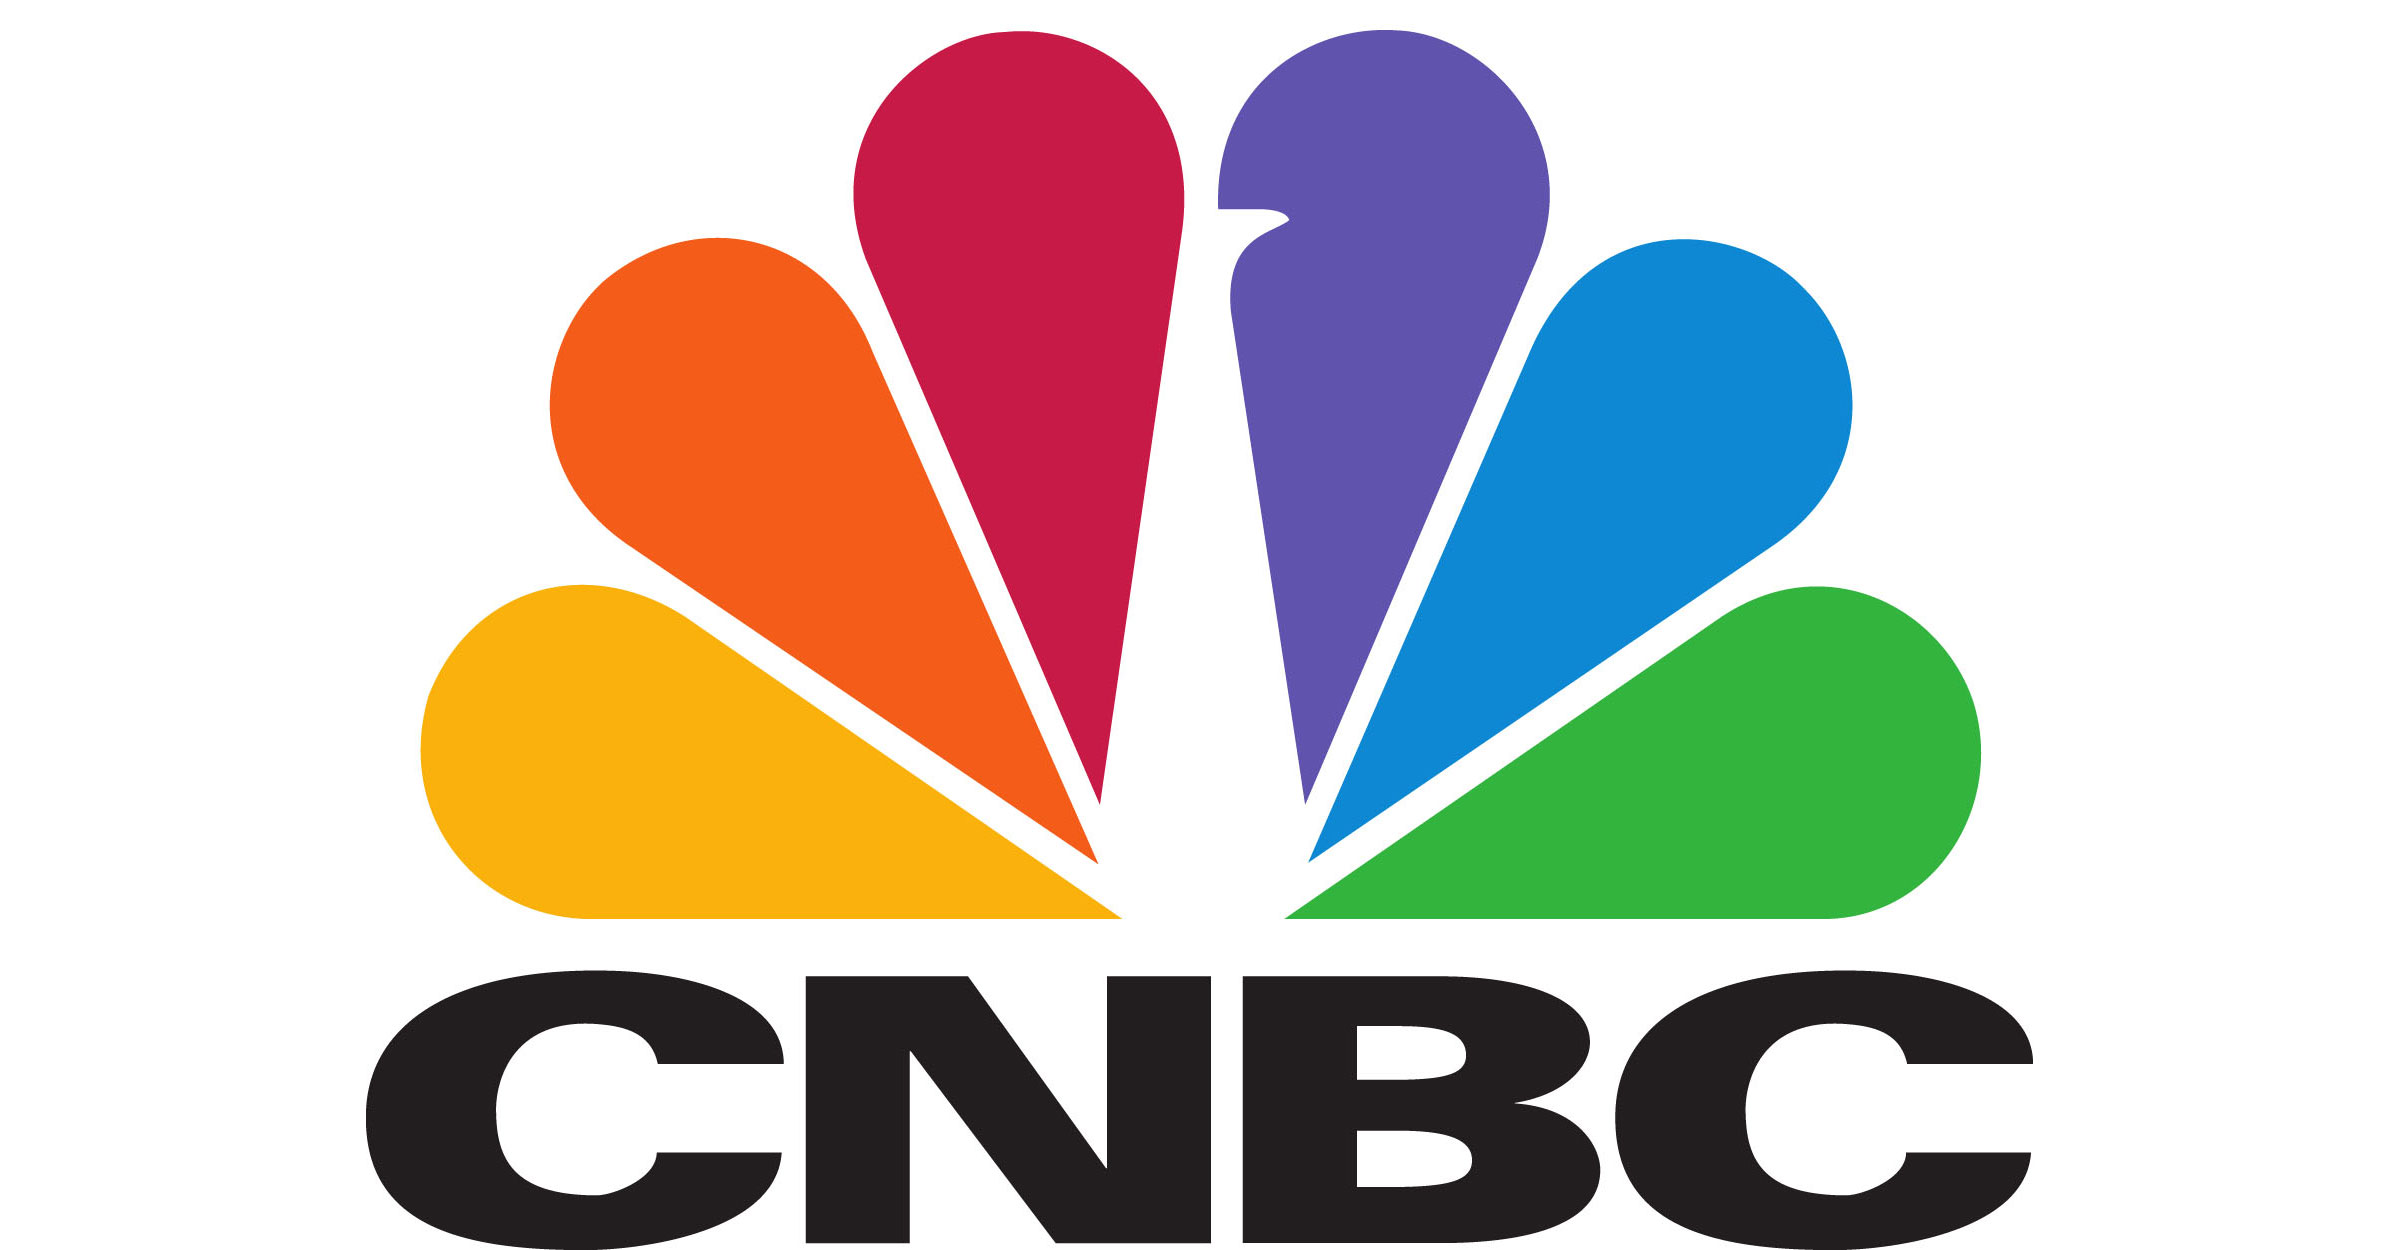 CNBC_logo_wide